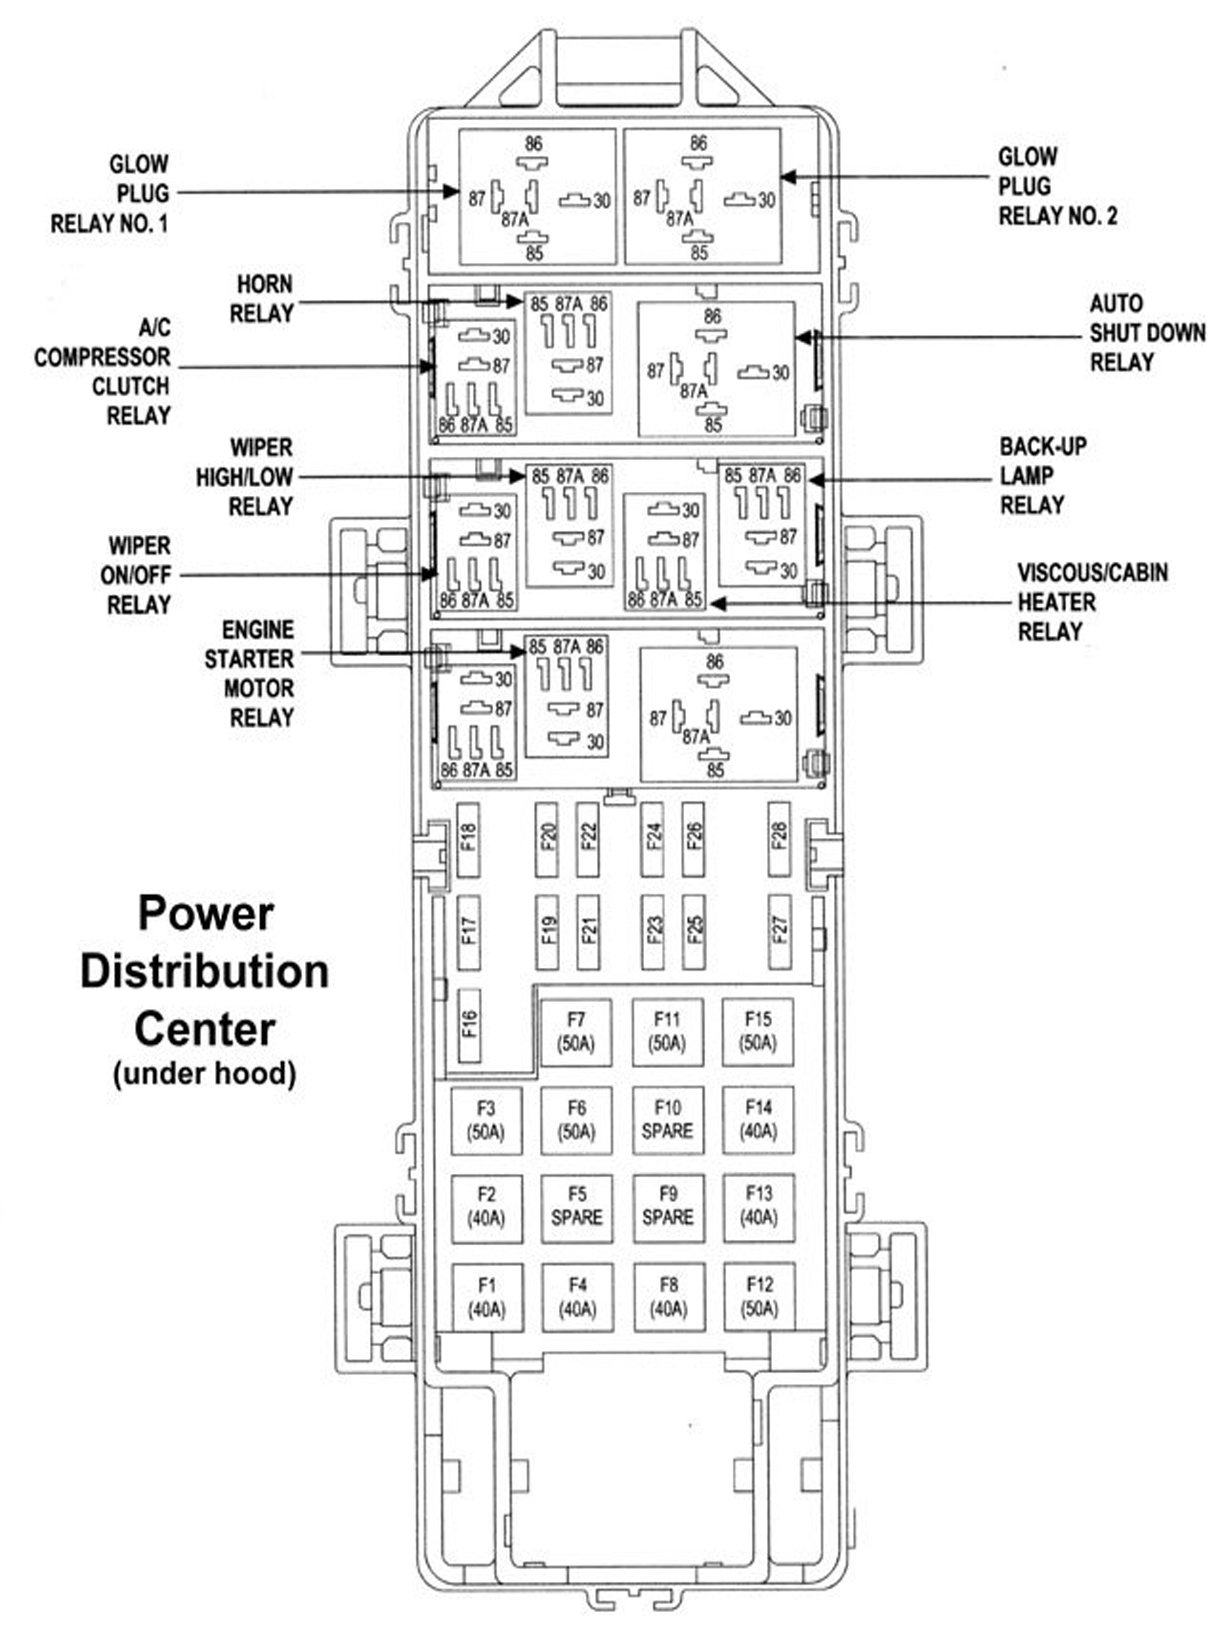 Jeep Grand Cherokee Wj To Fuse Box Diagram